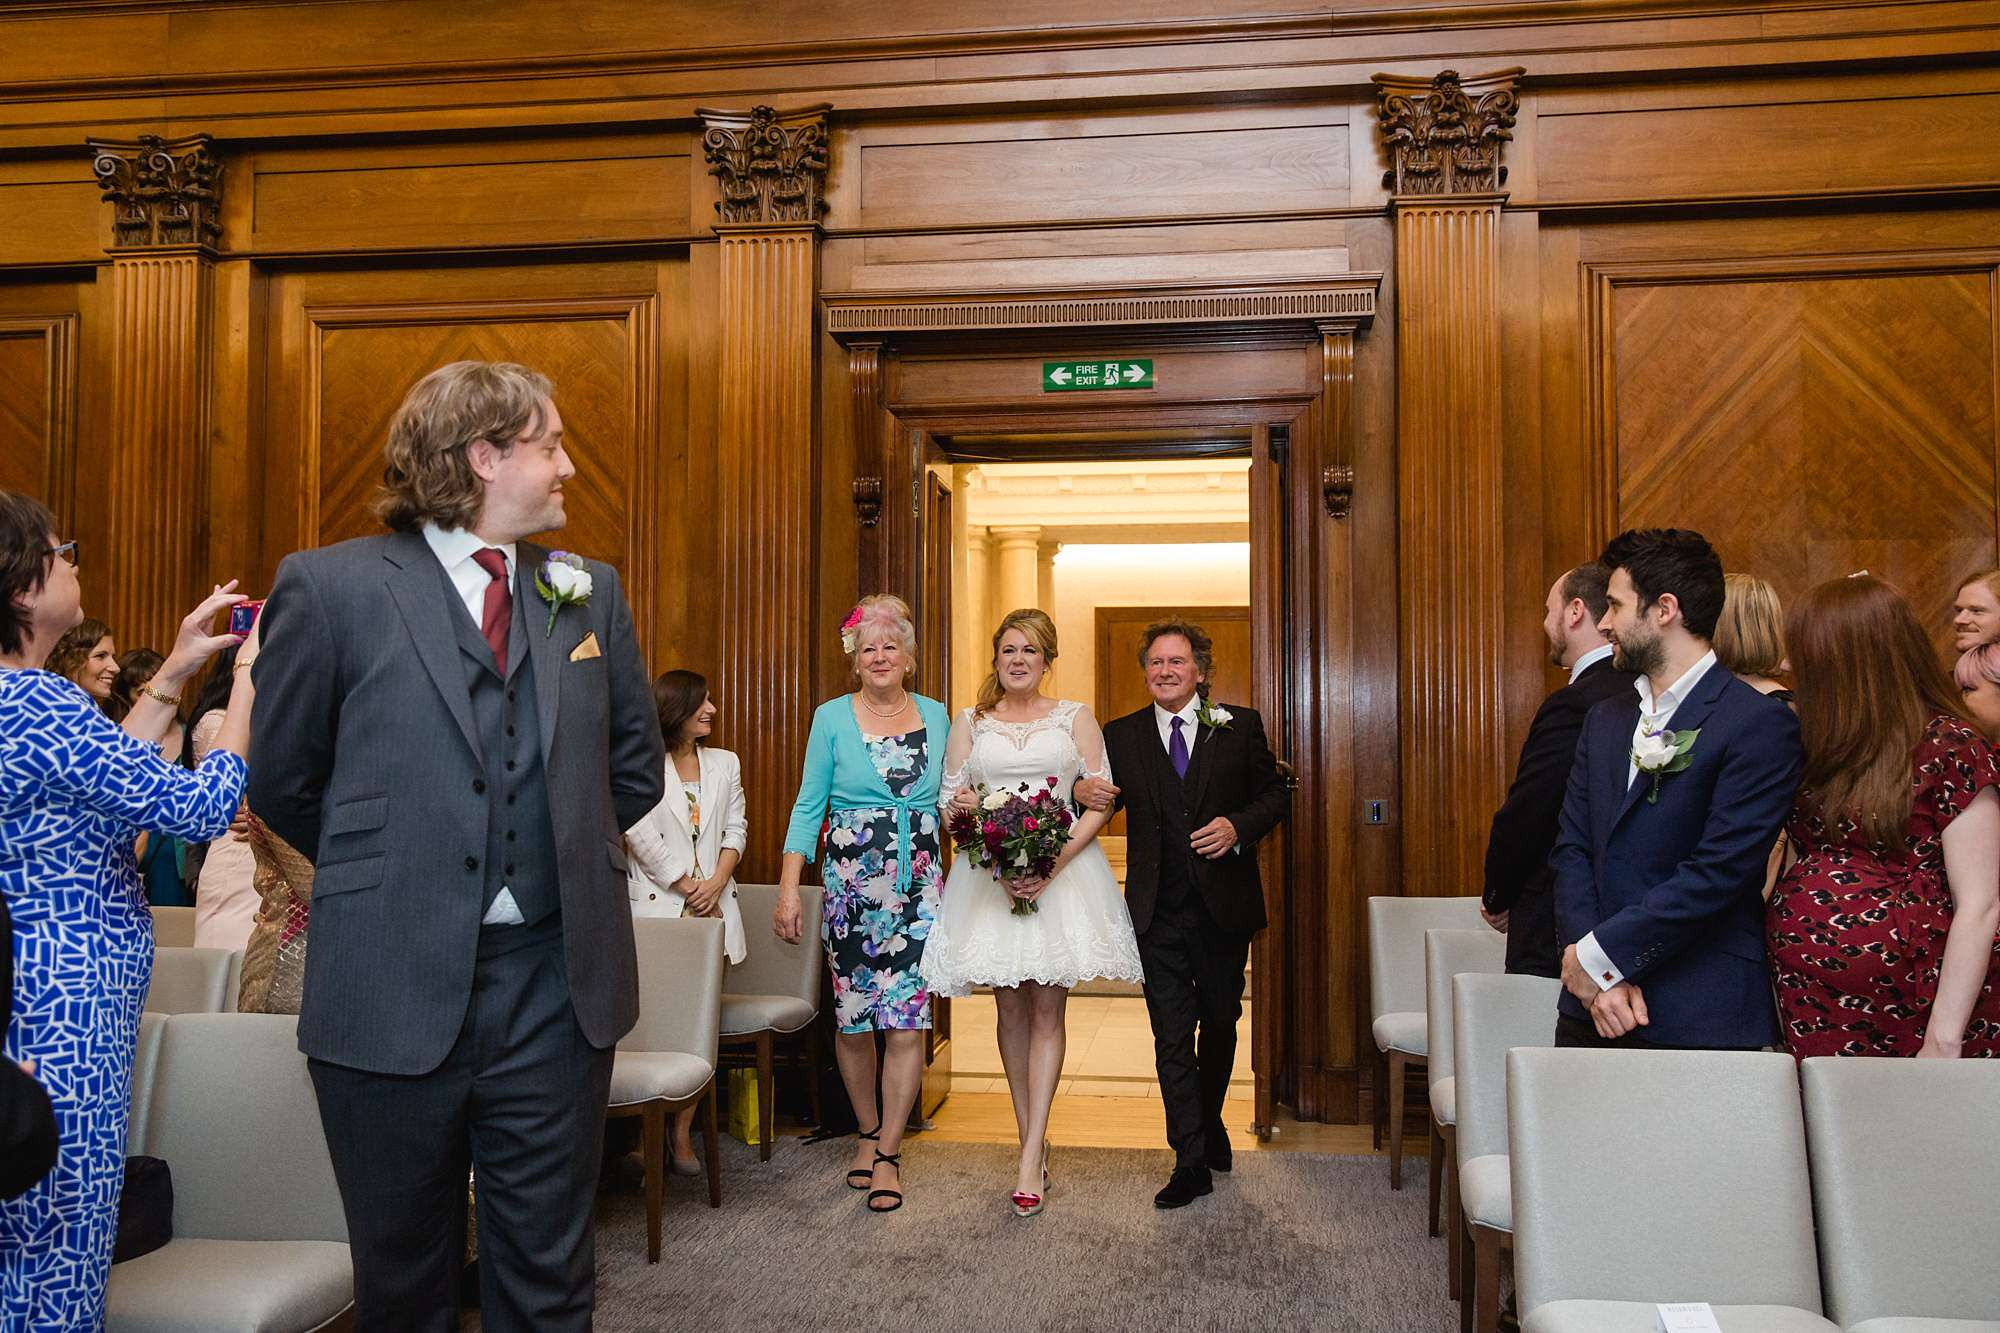 Old Marylebone Town Hall wedding photography bride and parents walk down aisle